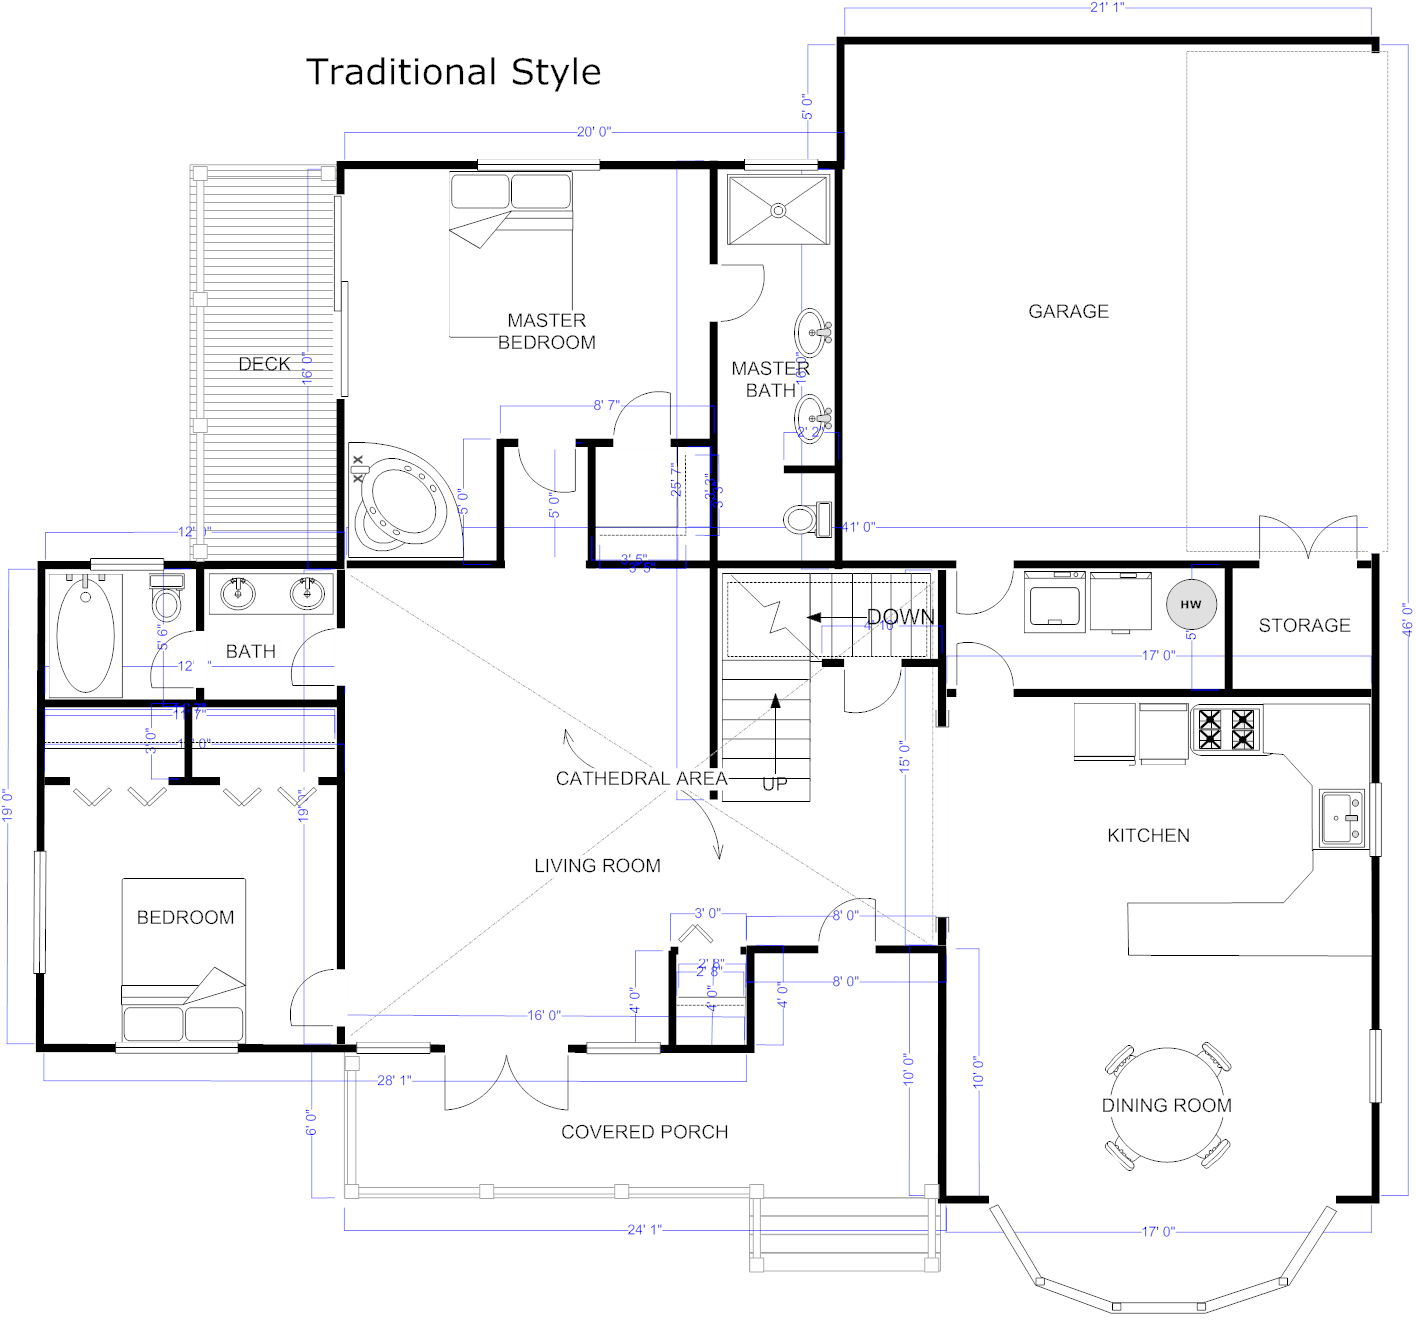 Floor Plan Maker - Draw Floor Plans with Floor Plan Templates